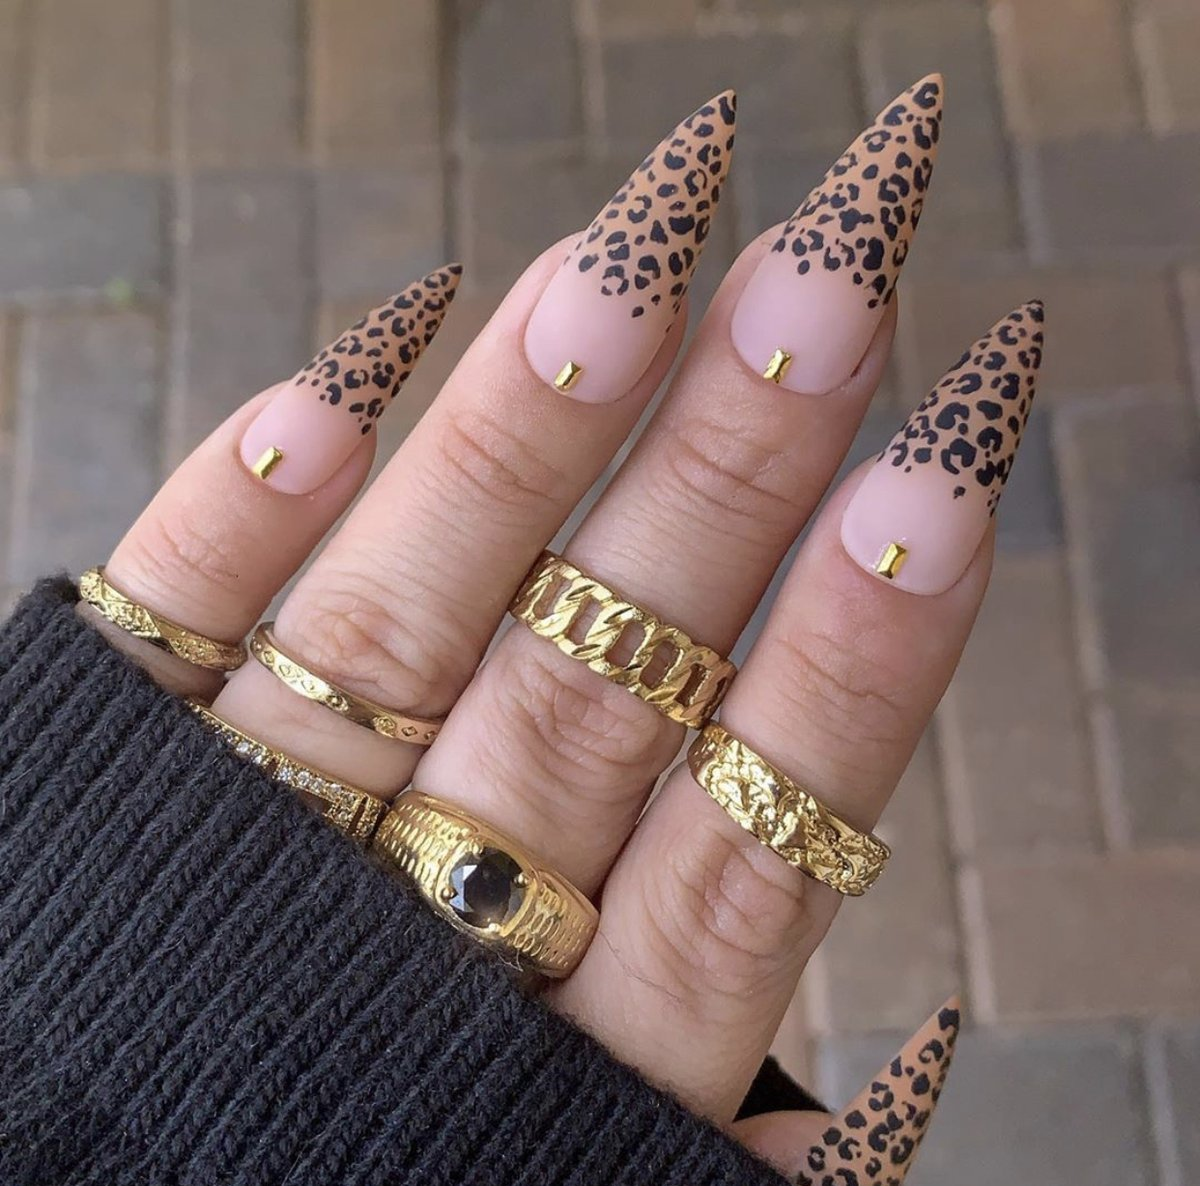 Nothing beats that Friday feeling like a fresh set // Steppin into the weekend like... (: @nailedbycristy)#DressedInLucy #nailgoals #nailfie pic.twitter.com/Pn6XXG6NwF